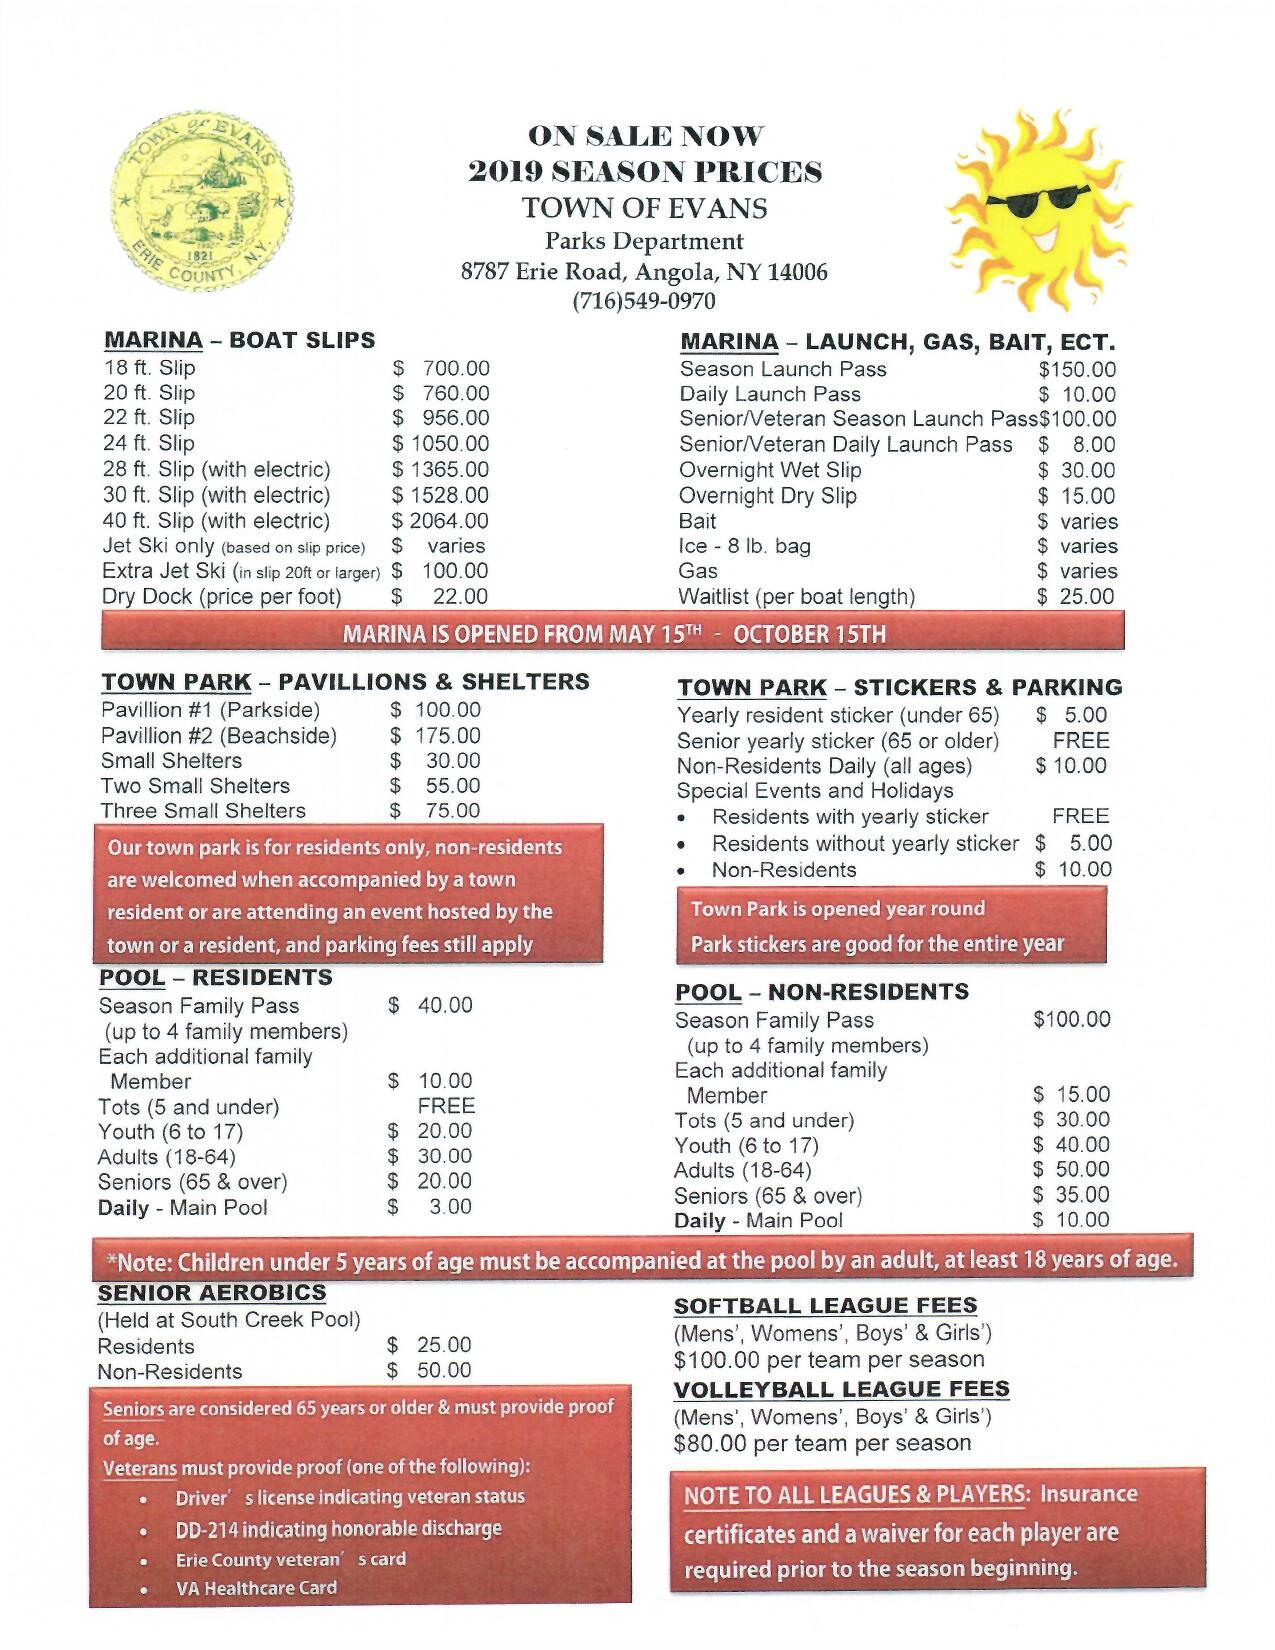 2019 Parks Pool Marina Fees